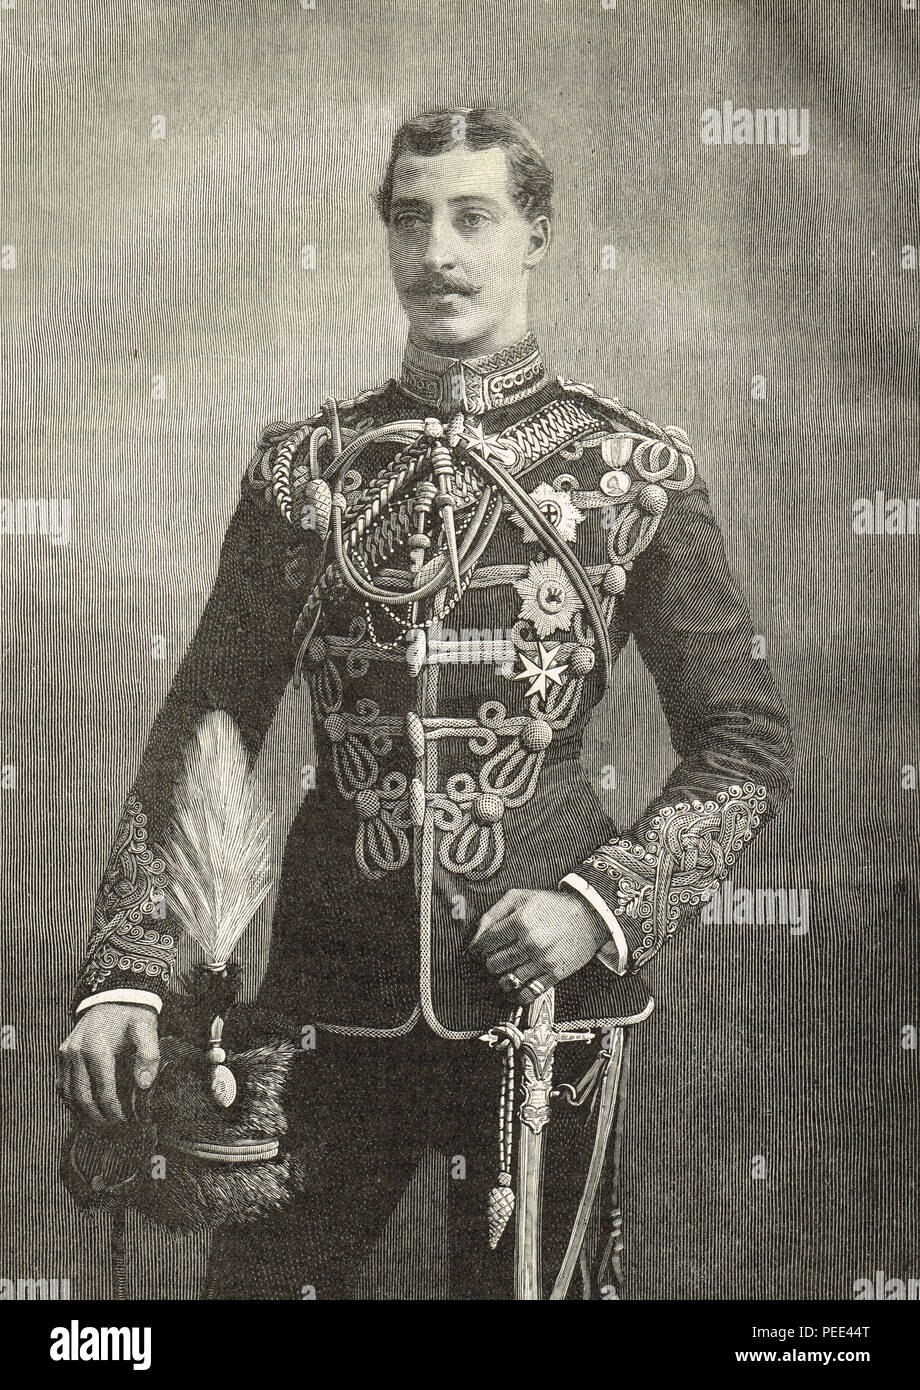 Prince Albert Victor, Duke of Clarence and Avondale, eldest child of the Prince of Wales later King Edward VII, second in line to the British throne, died before his father - Stock Image